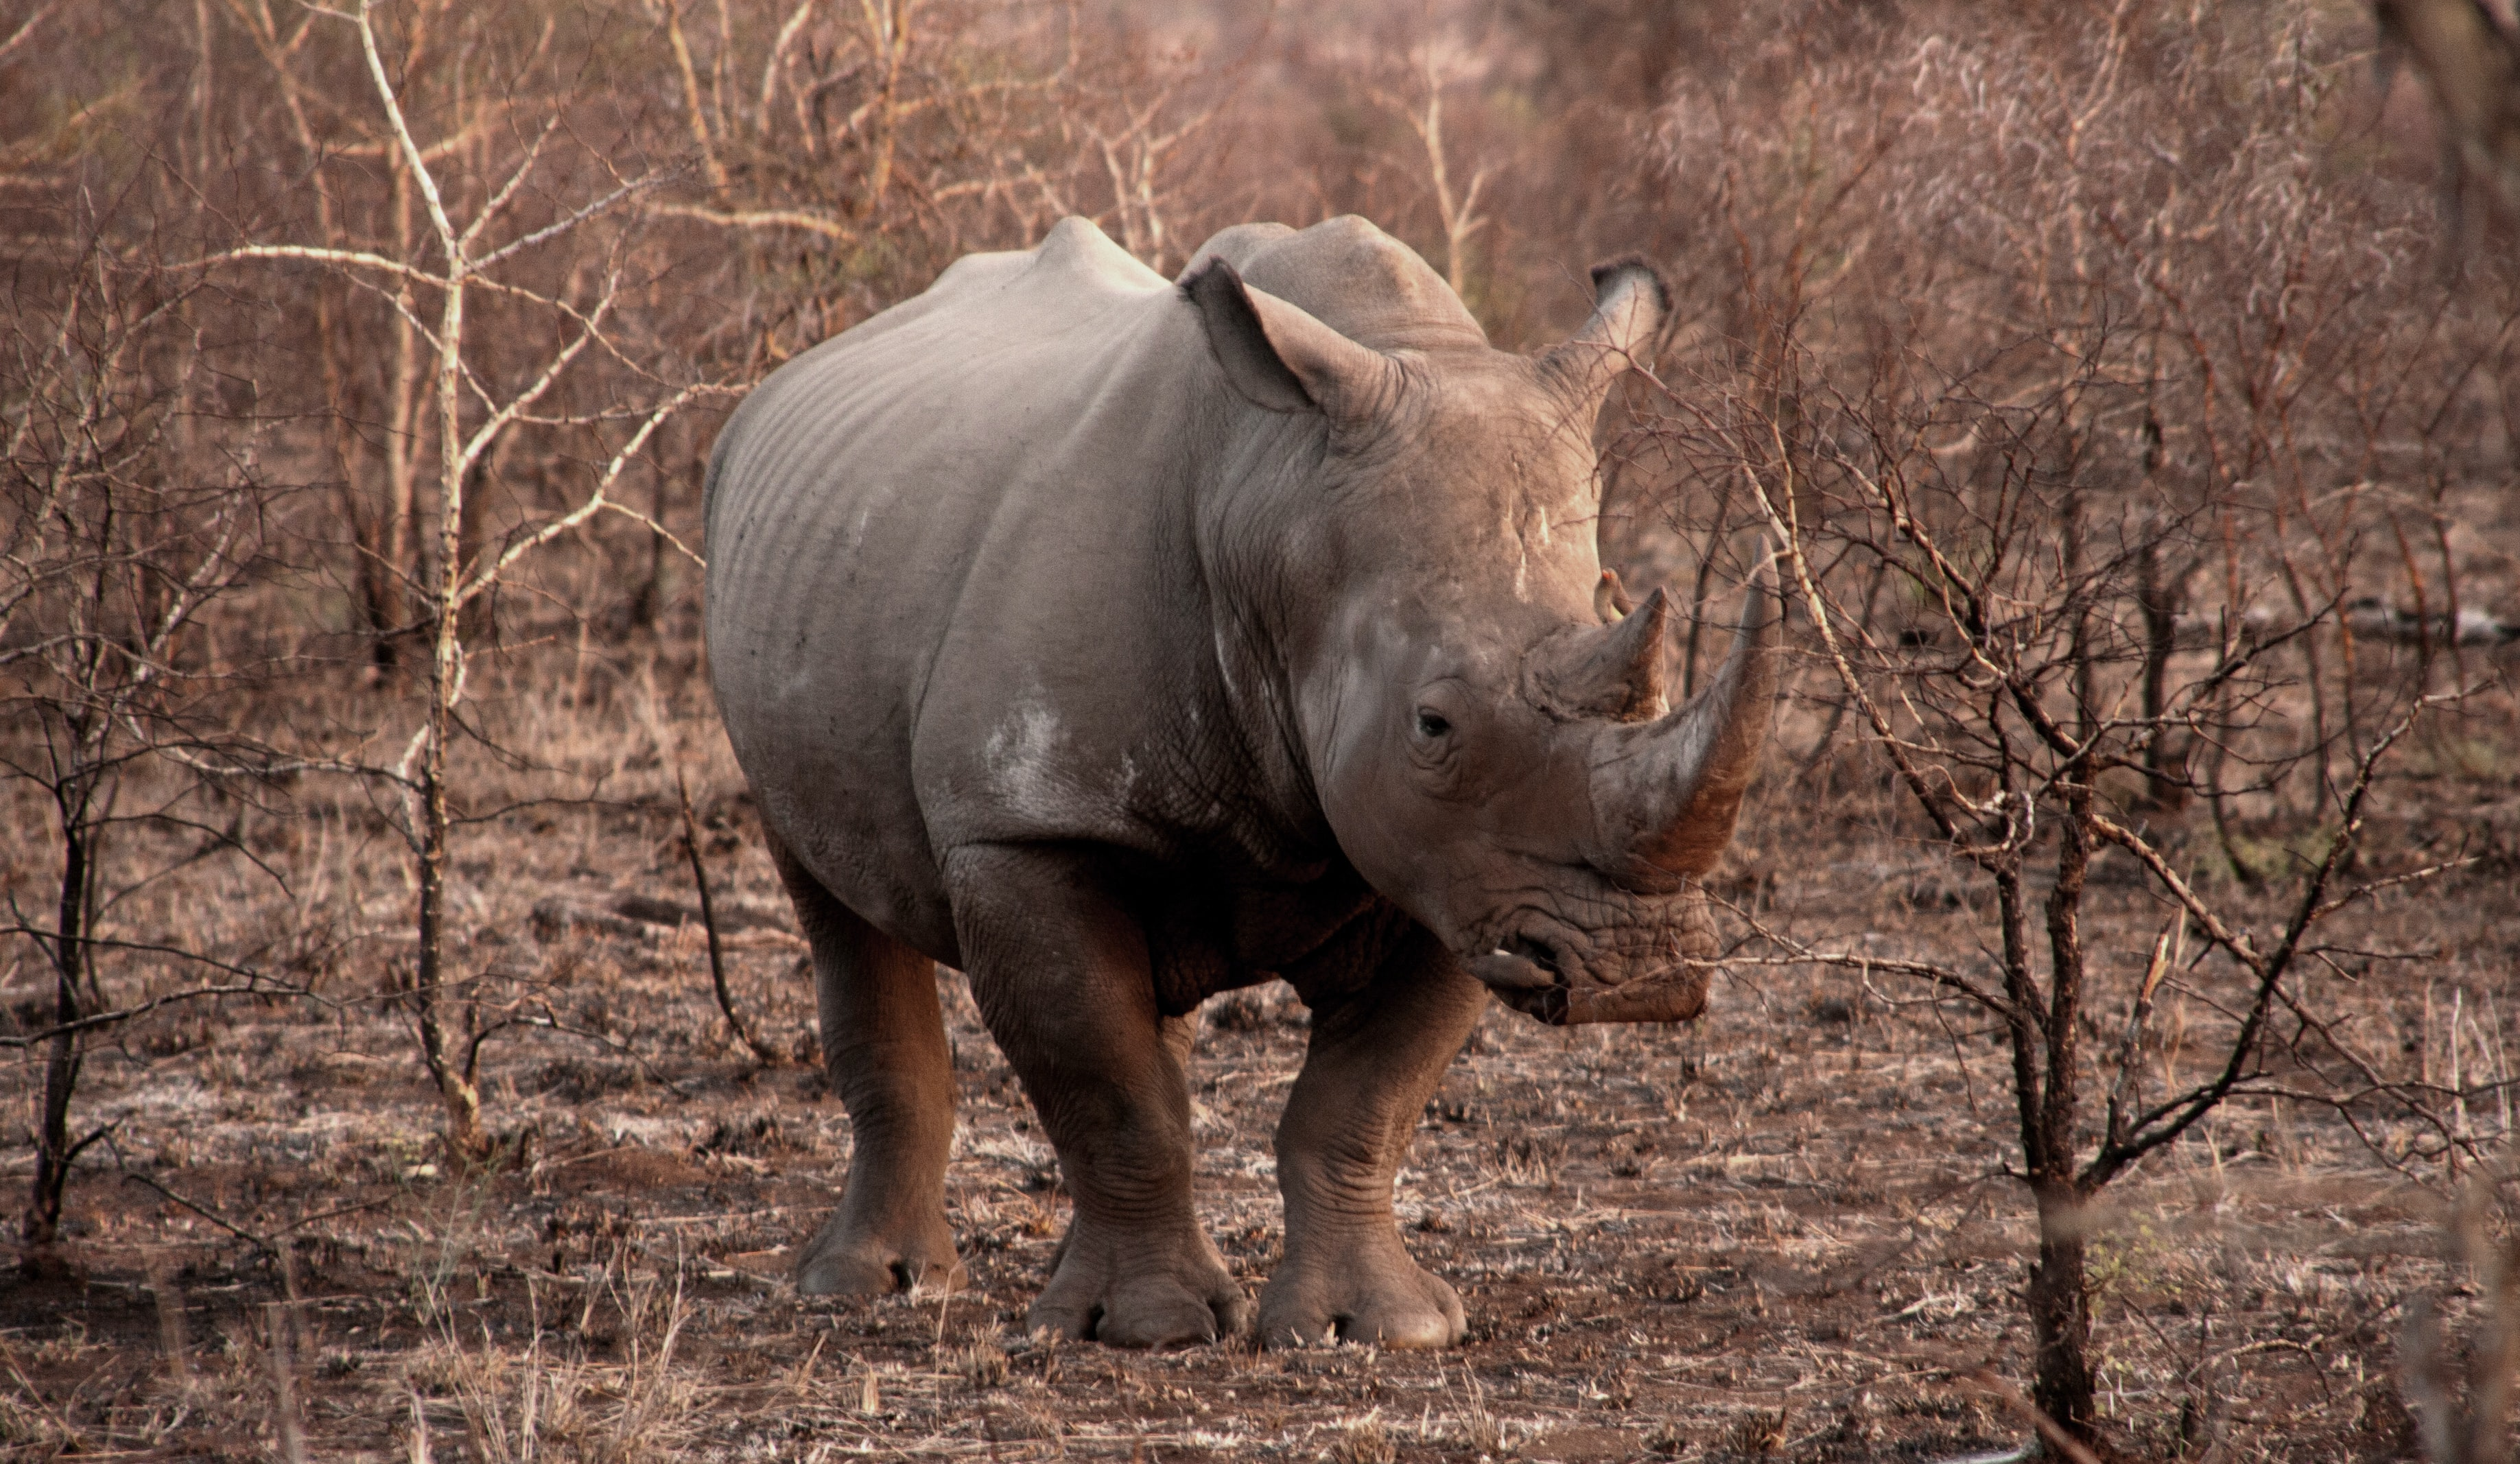 Rhinocerous beside leafless trees at dusk